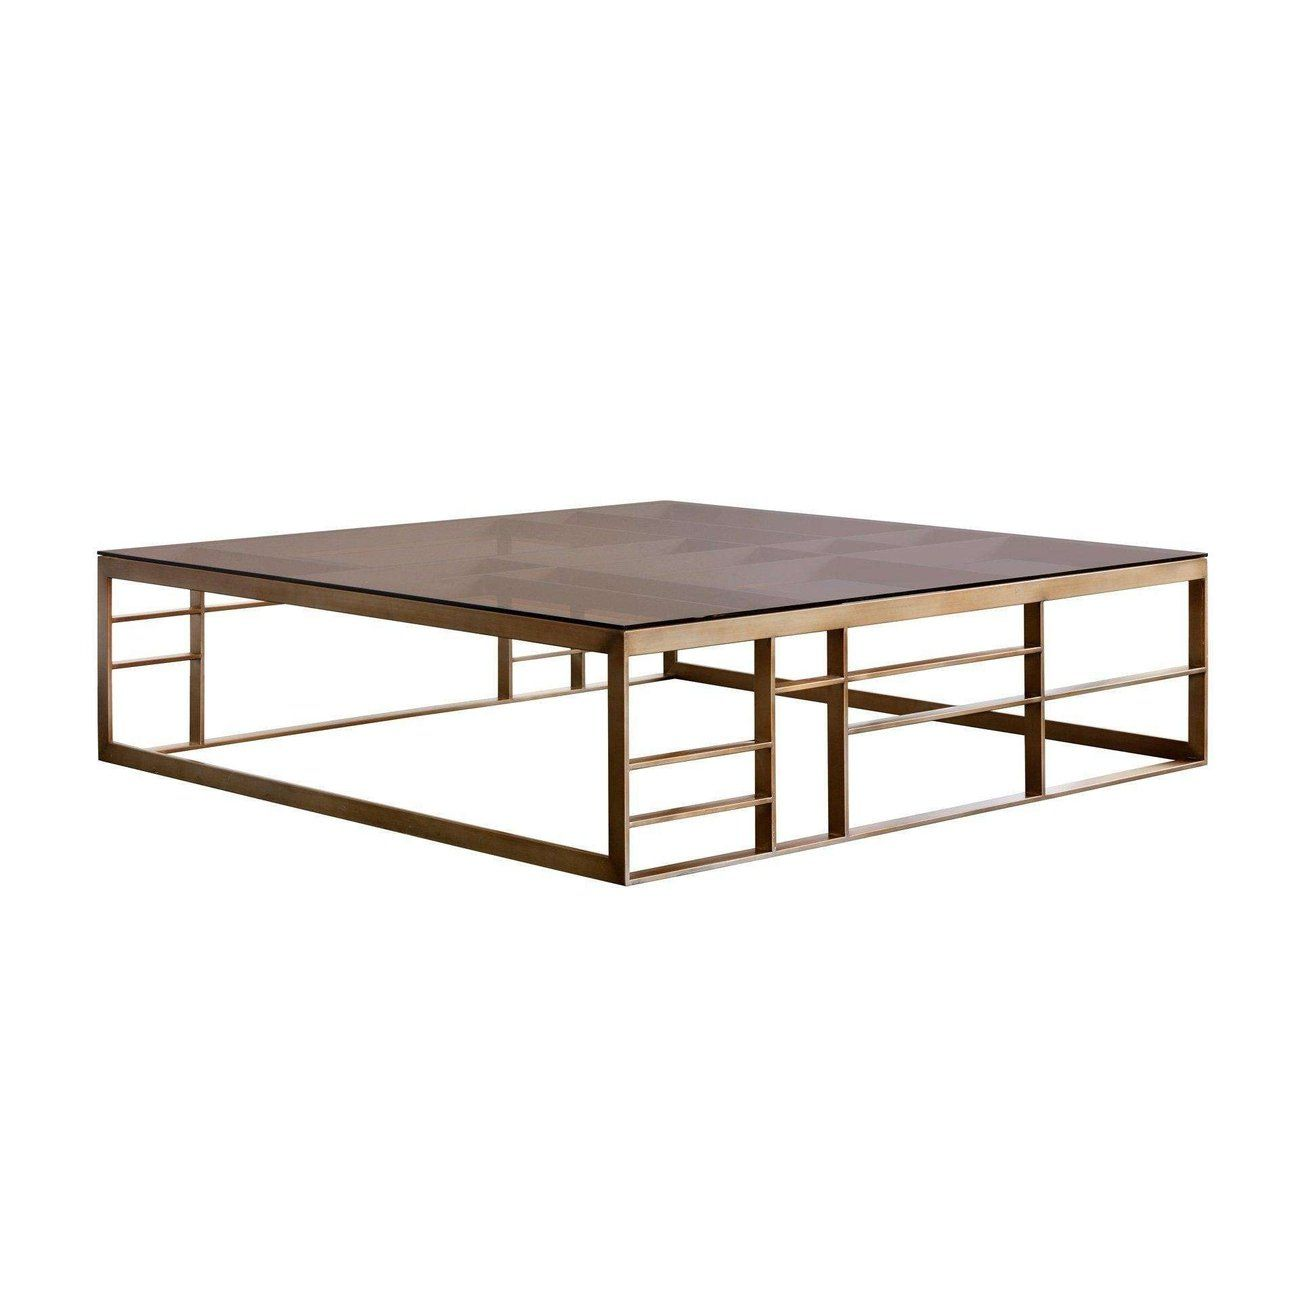 Joanna Coffee Table Square Antique Brass Brown Glassdefault Title In 2021 Coffee Table Square Oversized Square Coffee Table Coffee Table [ 1300 x 1300 Pixel ]